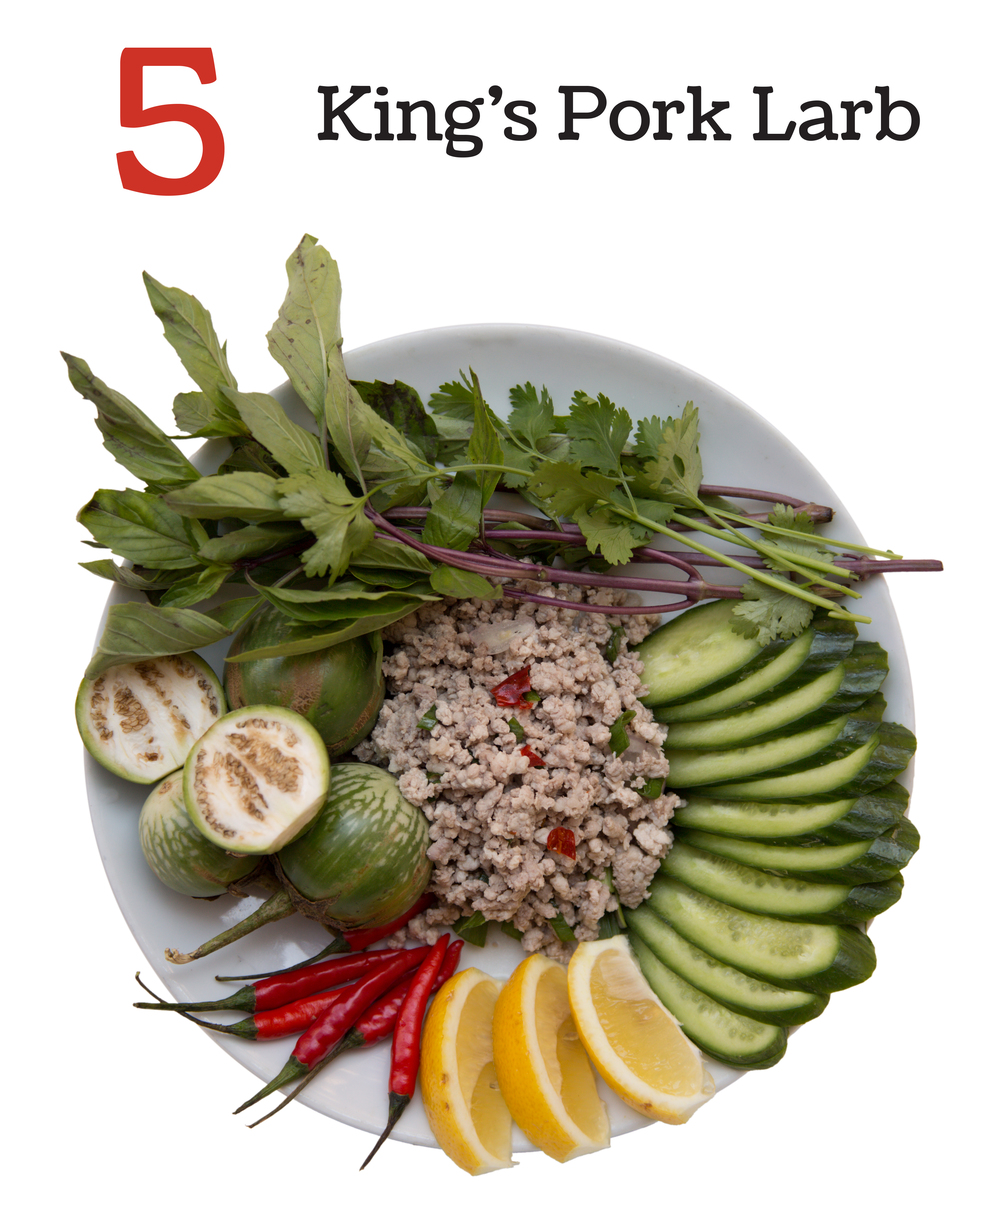 5 King's Pork Larb.jpg